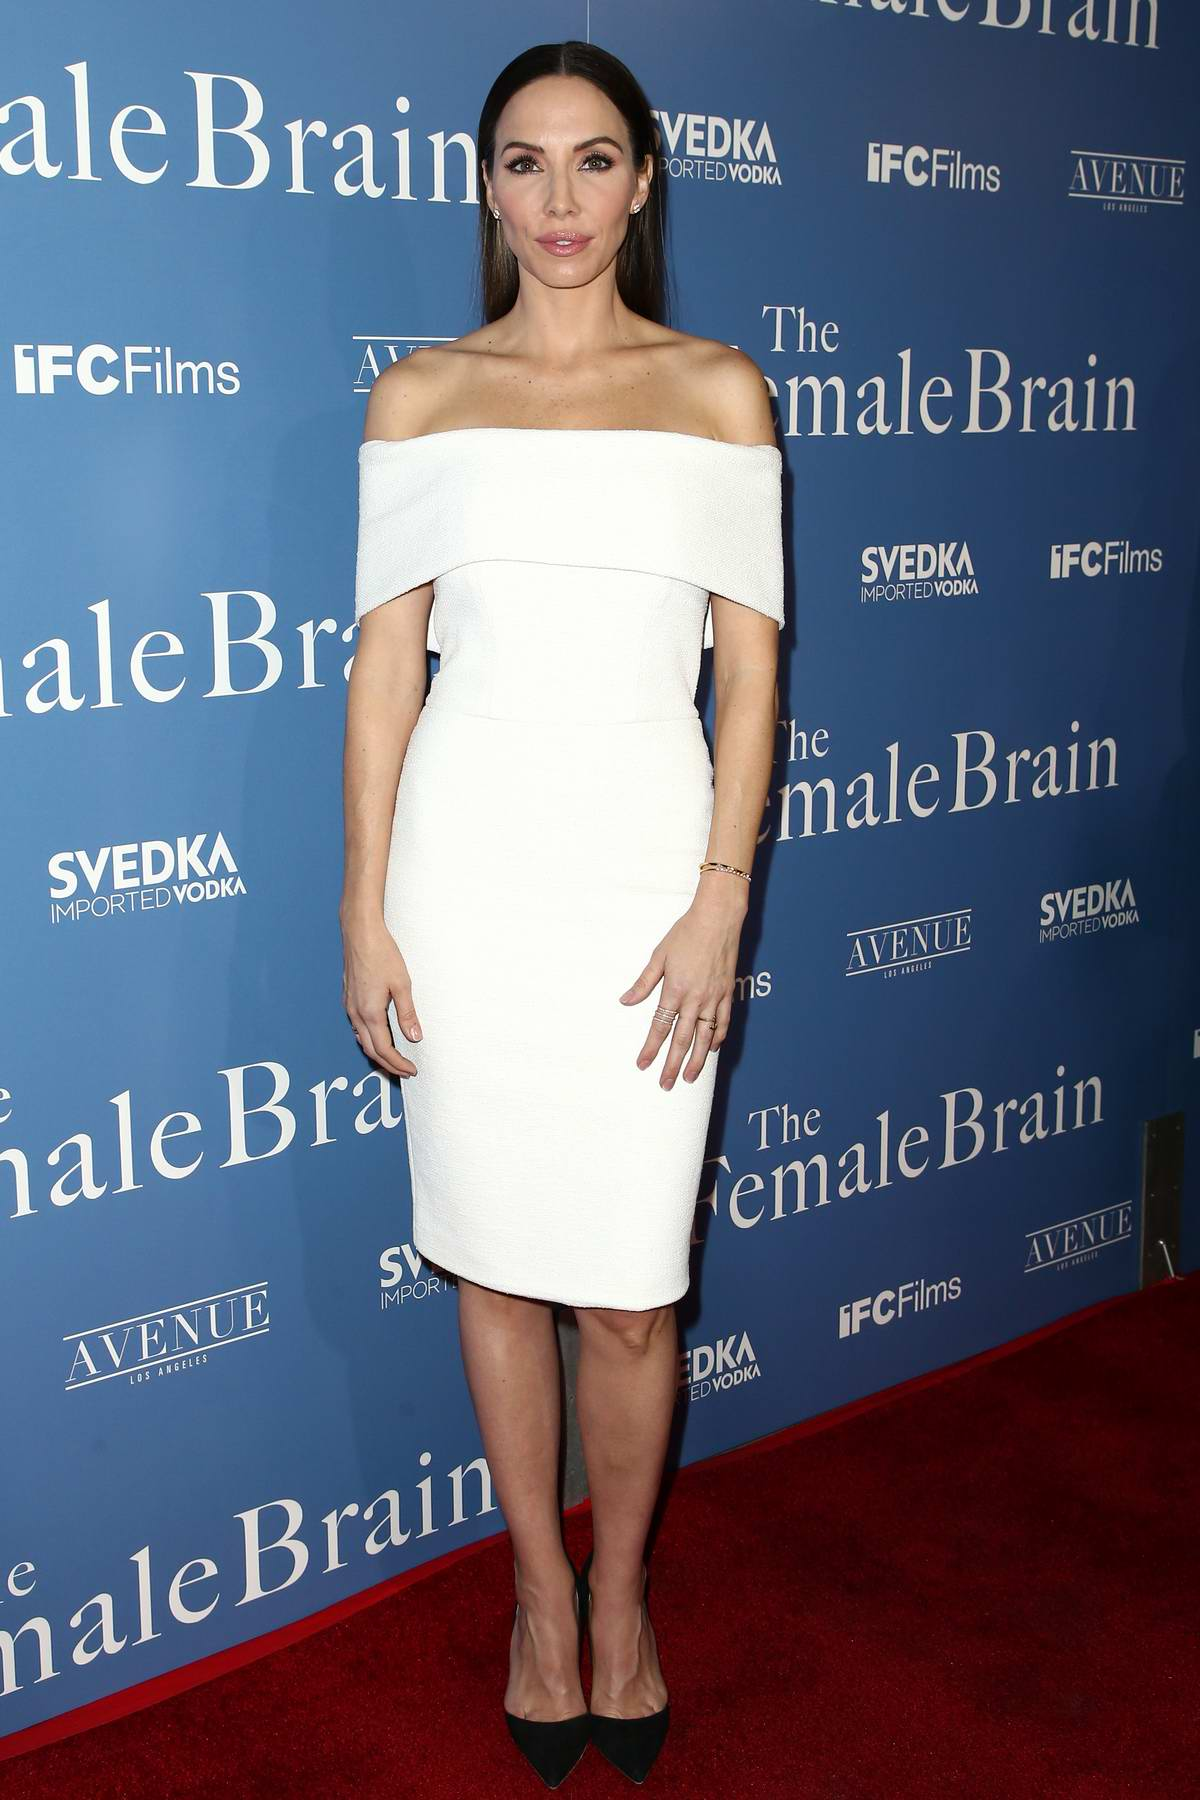 Whitney Cummings at 'The Female Brain' premiere held at Arclight Theatre in Hollywood, Los Angeles